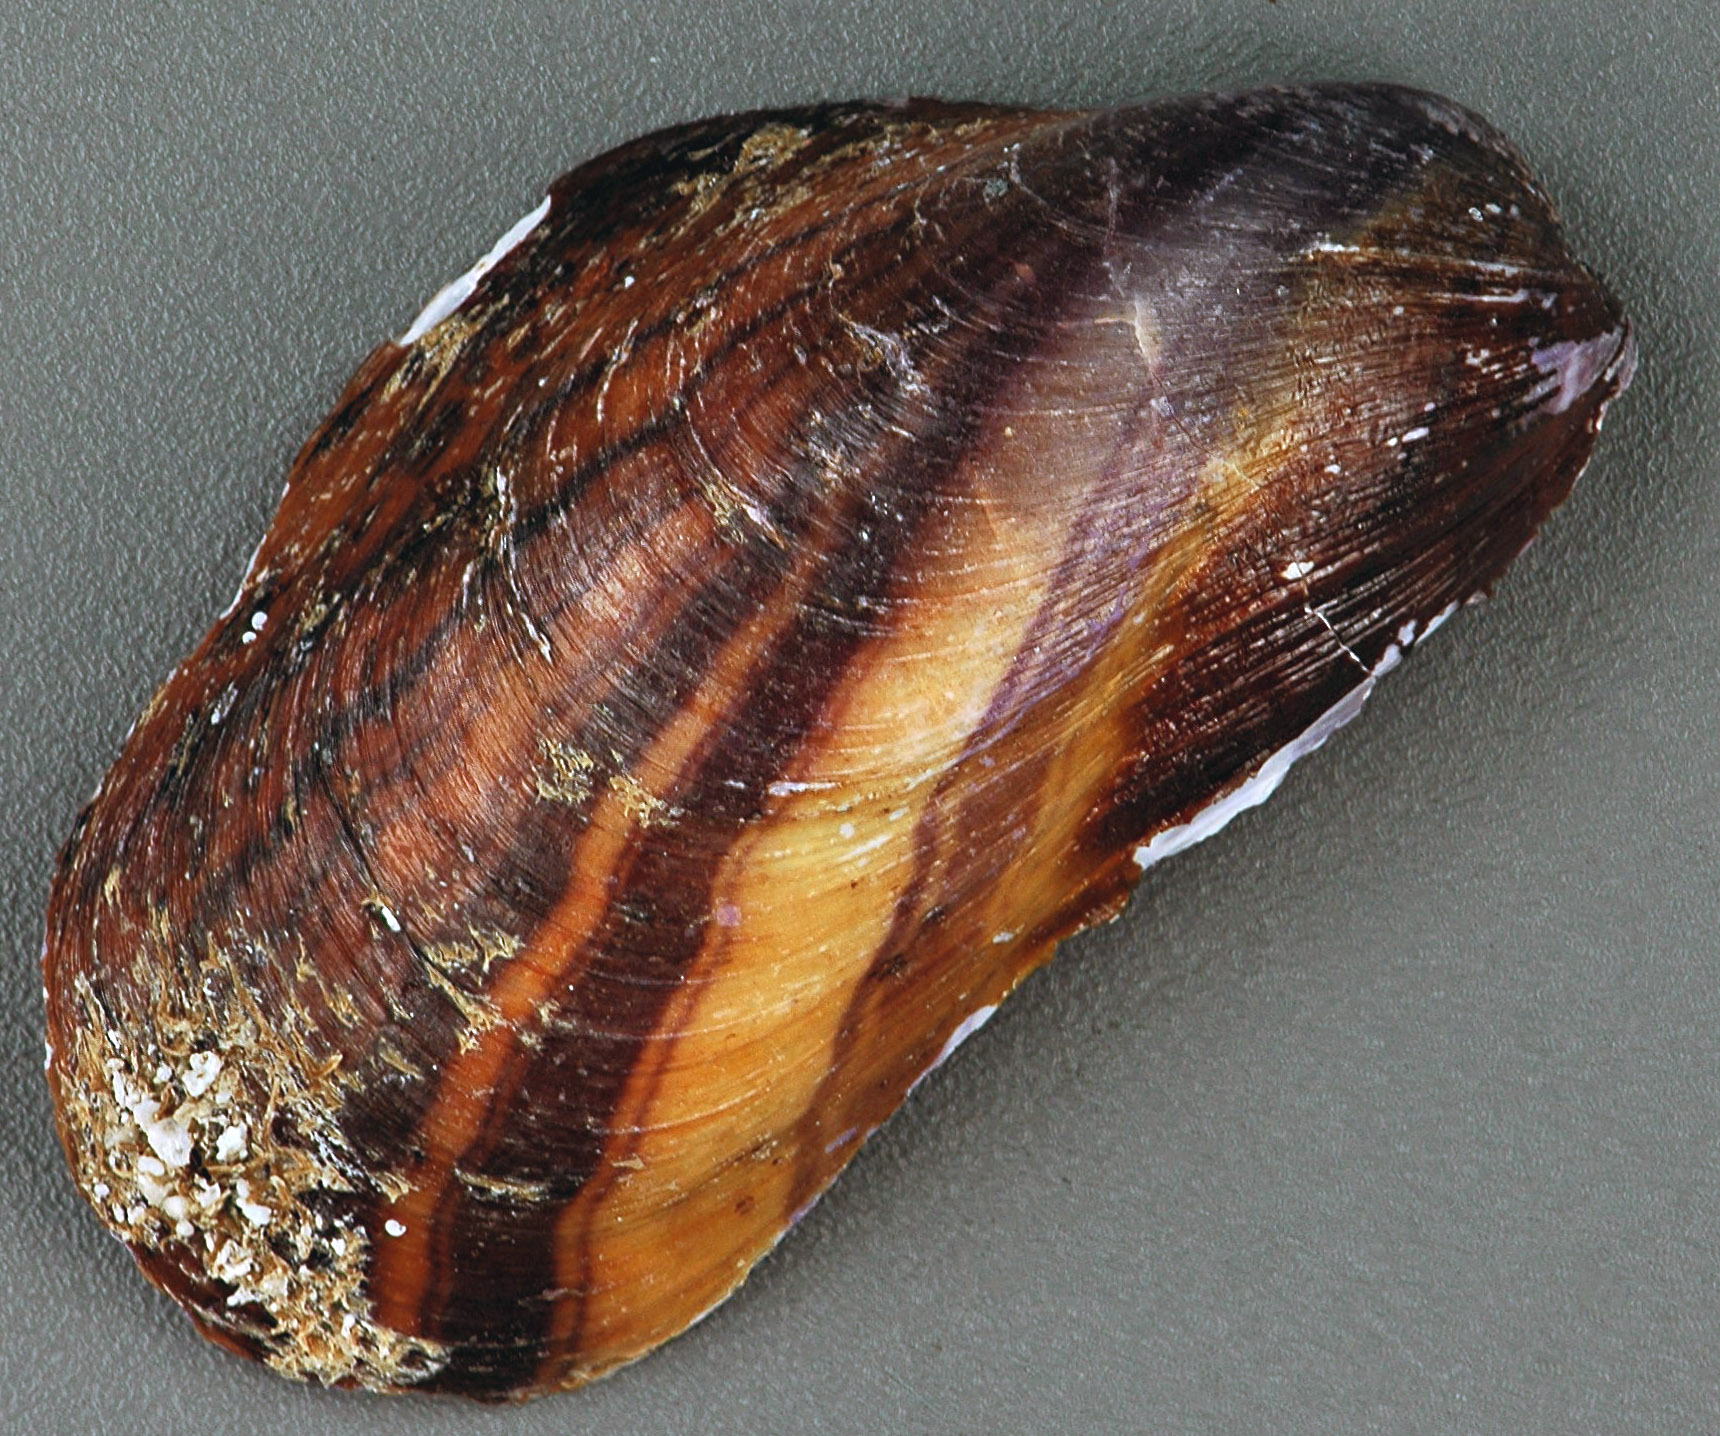 SeaShell News, 3-21-15, Tulip Mussel Via Wikimedia.